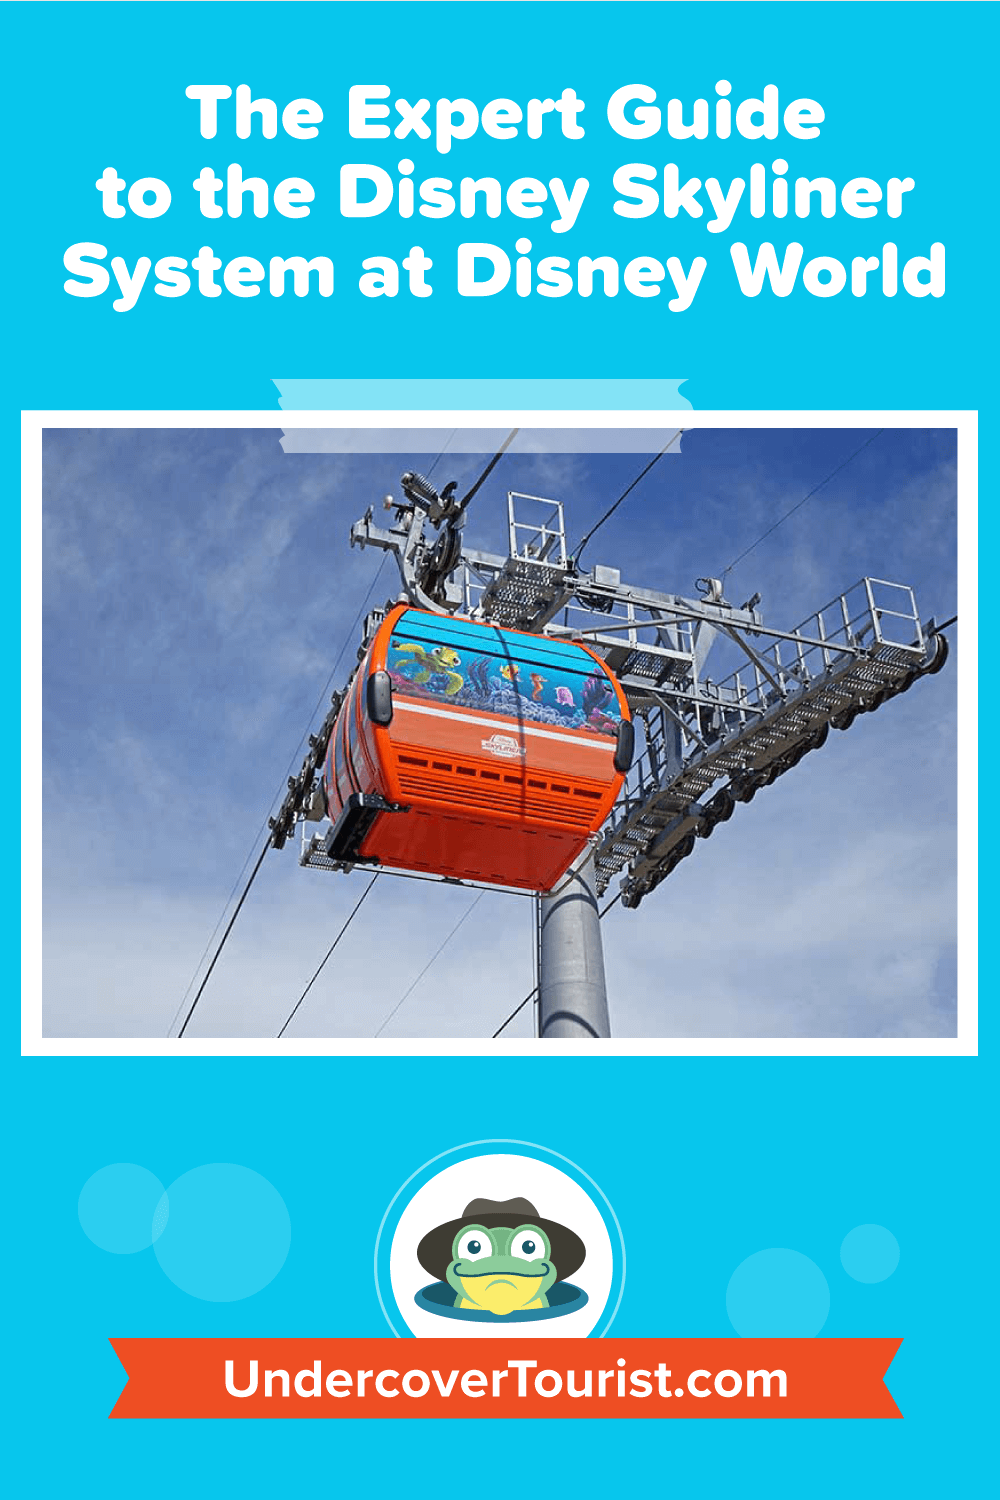 The Disney Skyliner Transportation System is Now Open at ... on disney camping map, walt disney map, incidents at walt disney world resort, disney photopass map, disney magical express map, golden oak at walt disney world resort, bay lake, downtown disney, las vegas monorail, disney magic map, mark iv monorail, jacksonville skyway, disney fantasyland map, disney road map, magic kingdom, seven seas lagoon, walt disney world resort, disney train map, disney resort line, mark vi monorail, lake buena vista, seattle center monorail, disney bus map, disney frontierland map, disneyland monorail system, disney resort map, disney fastpass map, disney transportation map, disney airport map, disney boat map, downtown disney map, walt disney world company, discovery island, disney fl map, disney transport, epcot map, disney world map, disney shuttle map,